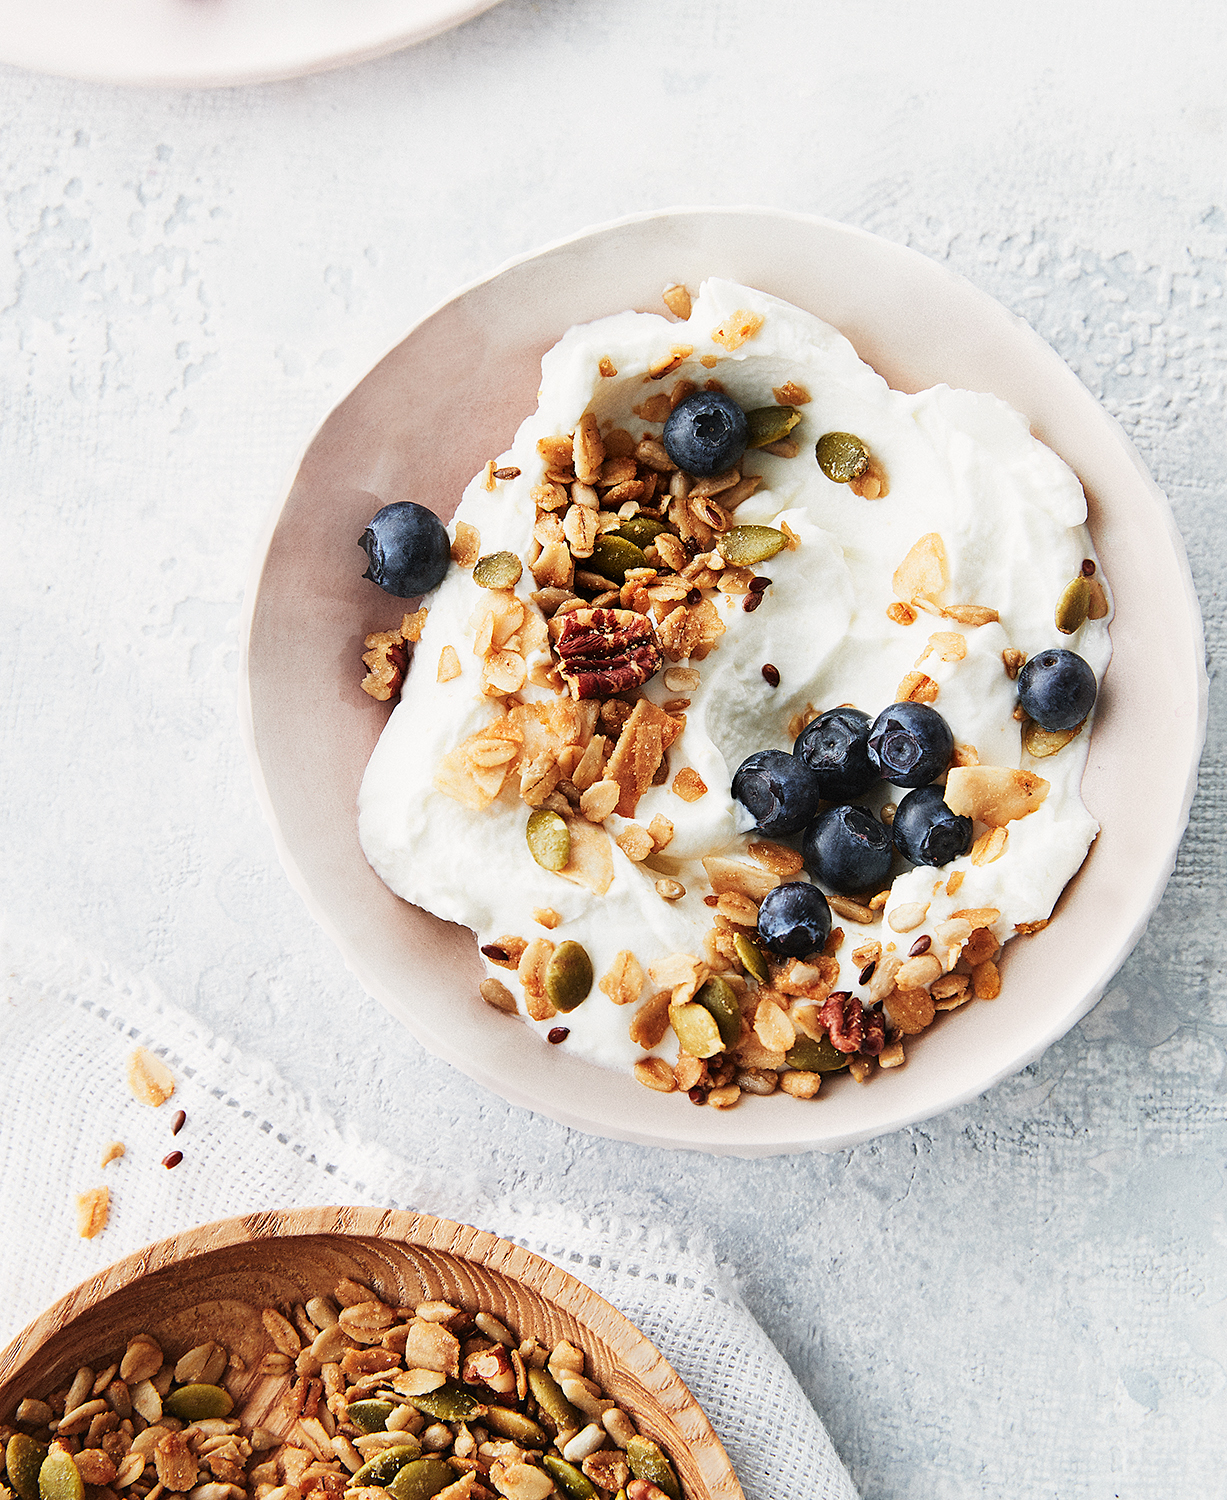 11_Yogurt_Granola_RecipeShot_RS_6576.jpg